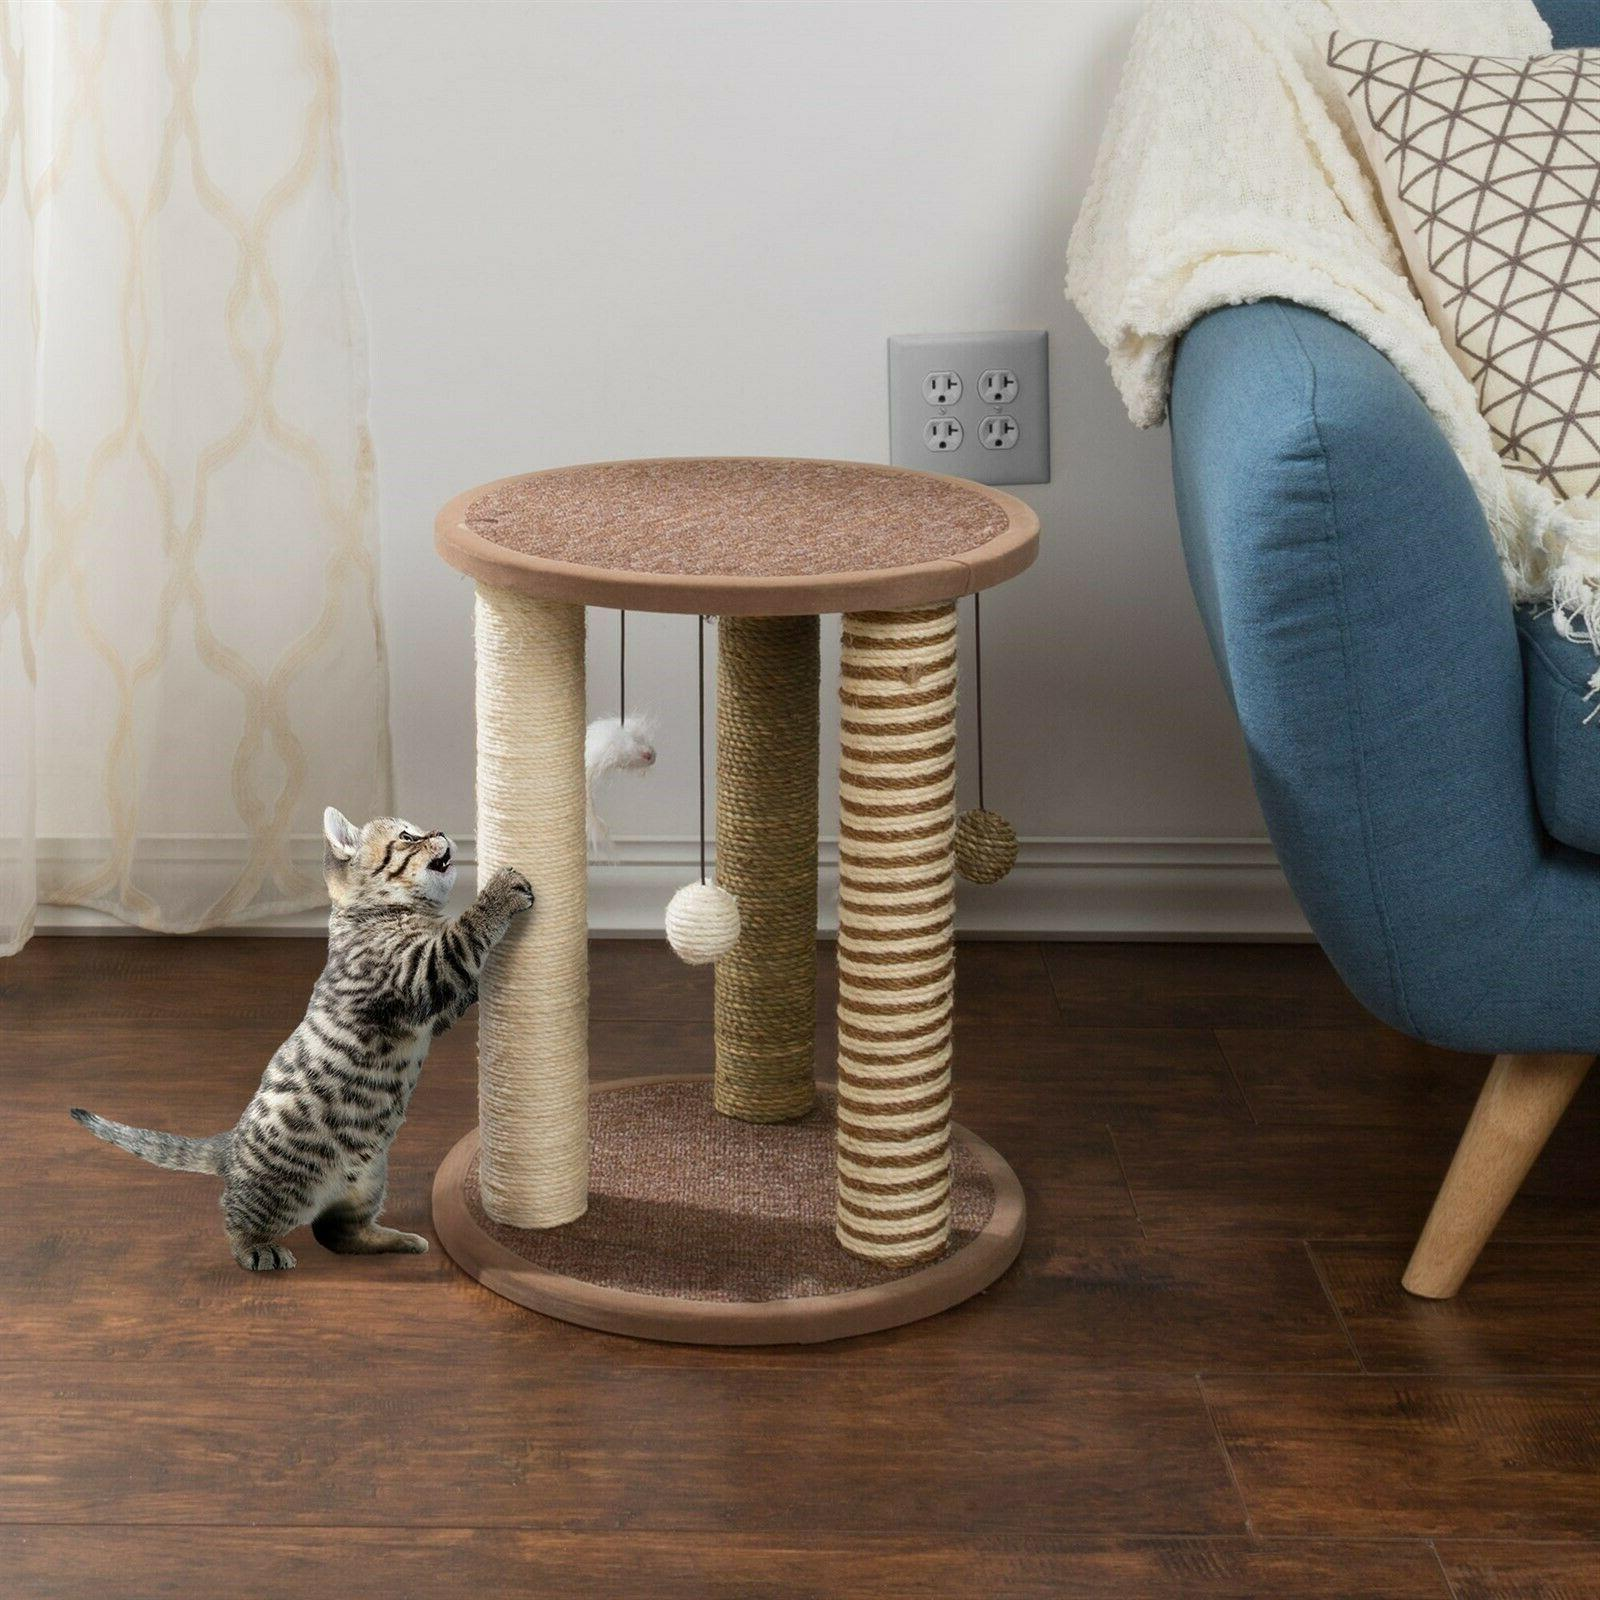 Cat Scratching Post Perch Rope and Kittens